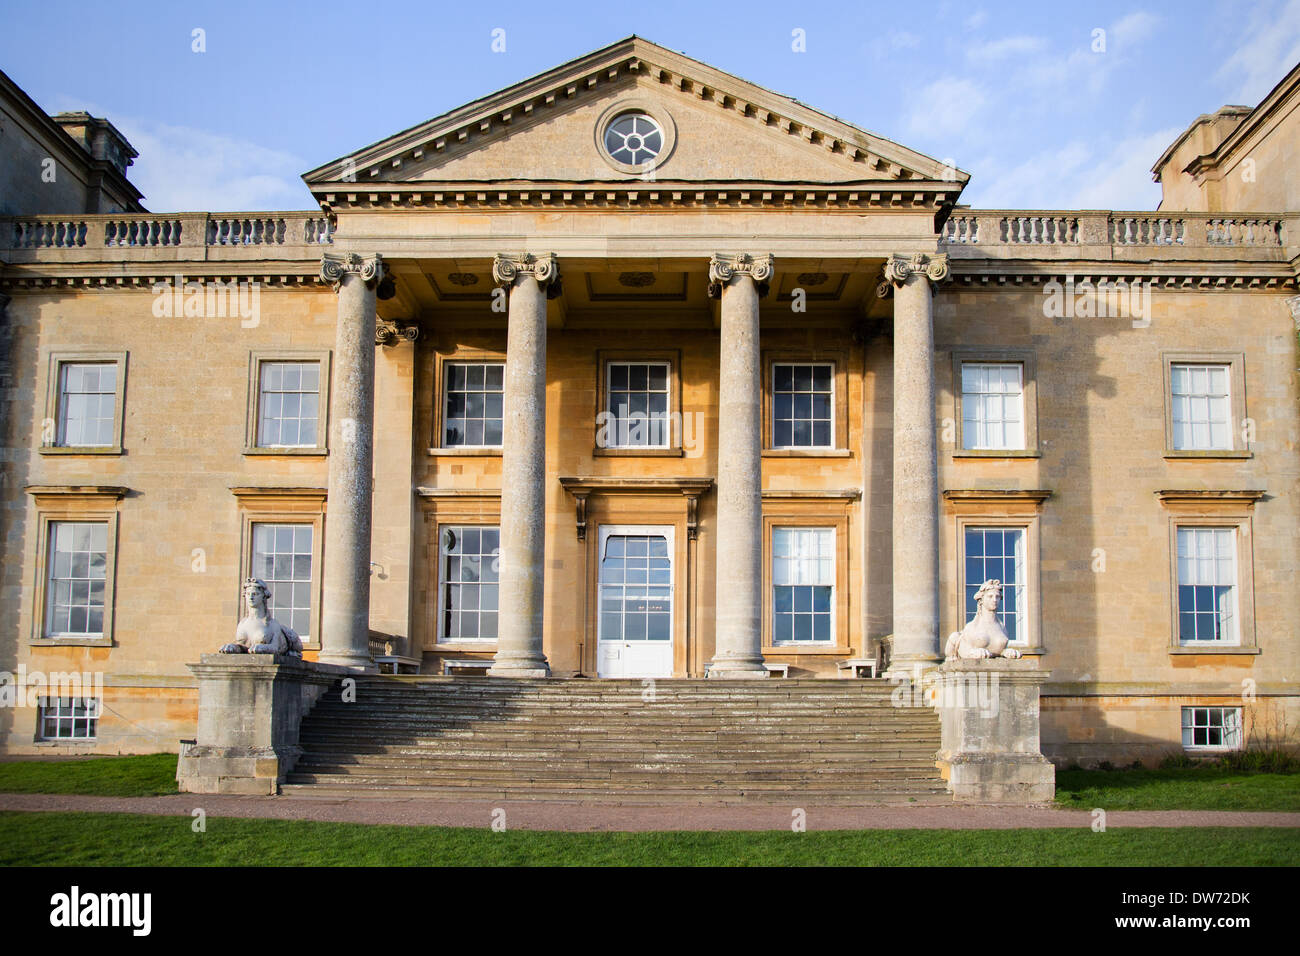 South portico of Croome Park in Worcestershire with broad steps flanked by sphinxes - Stock Image